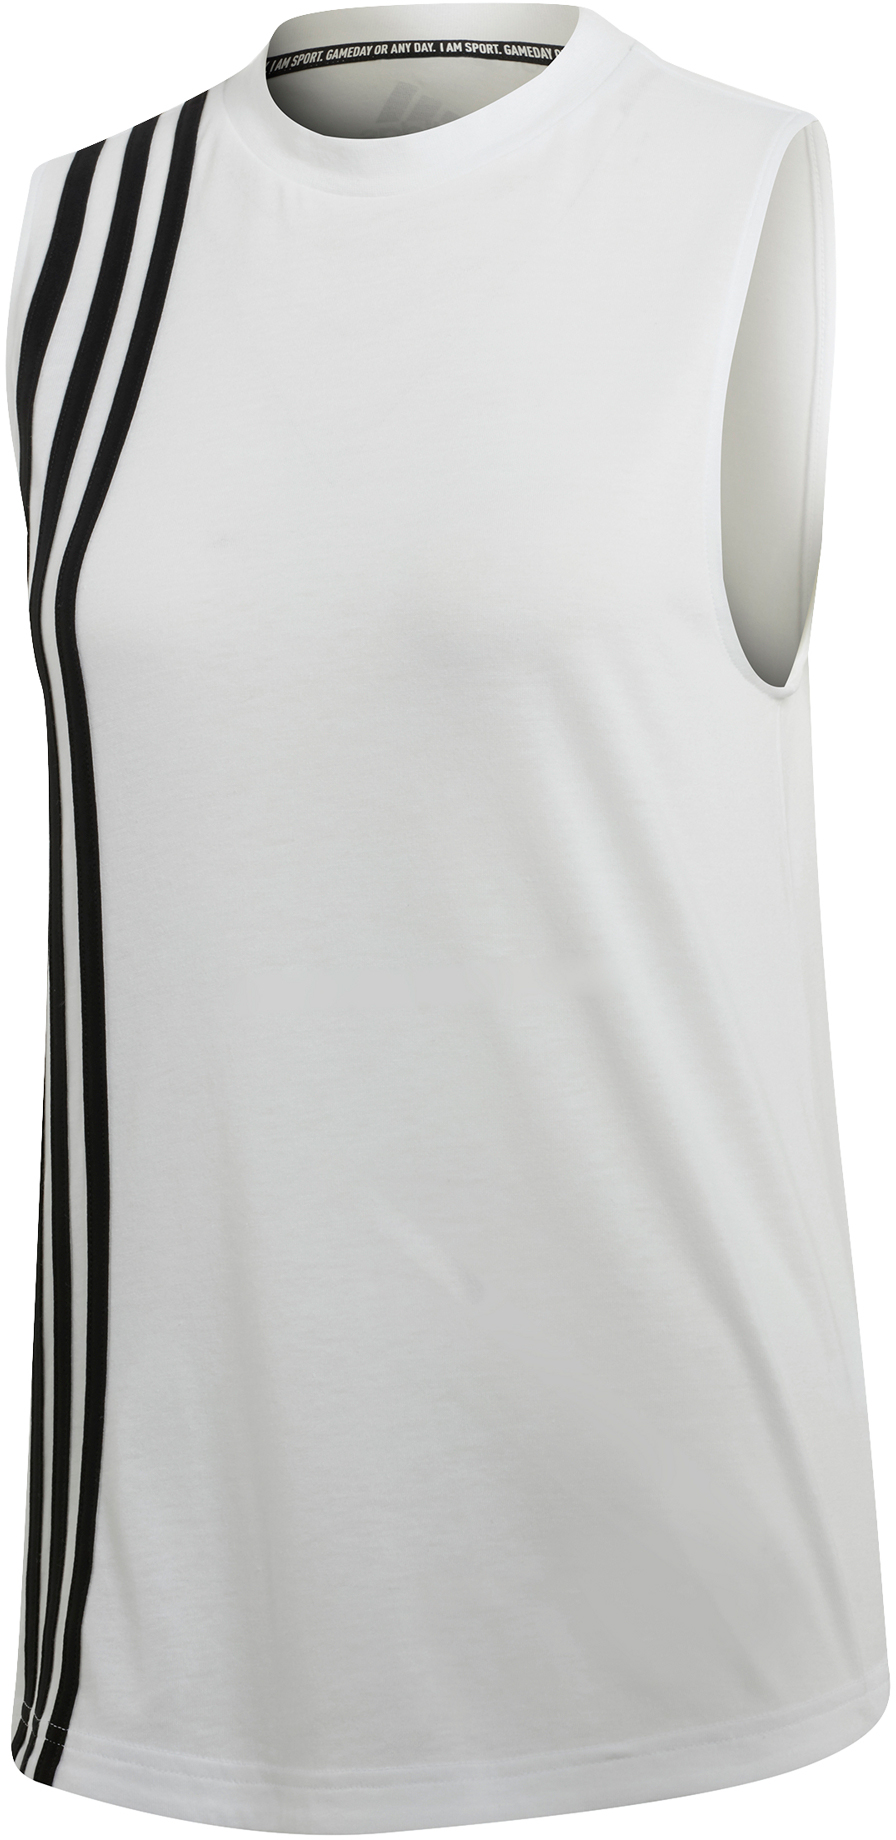 adidas Women's Must Haves 3-Stripes Tank Top | Jerseys